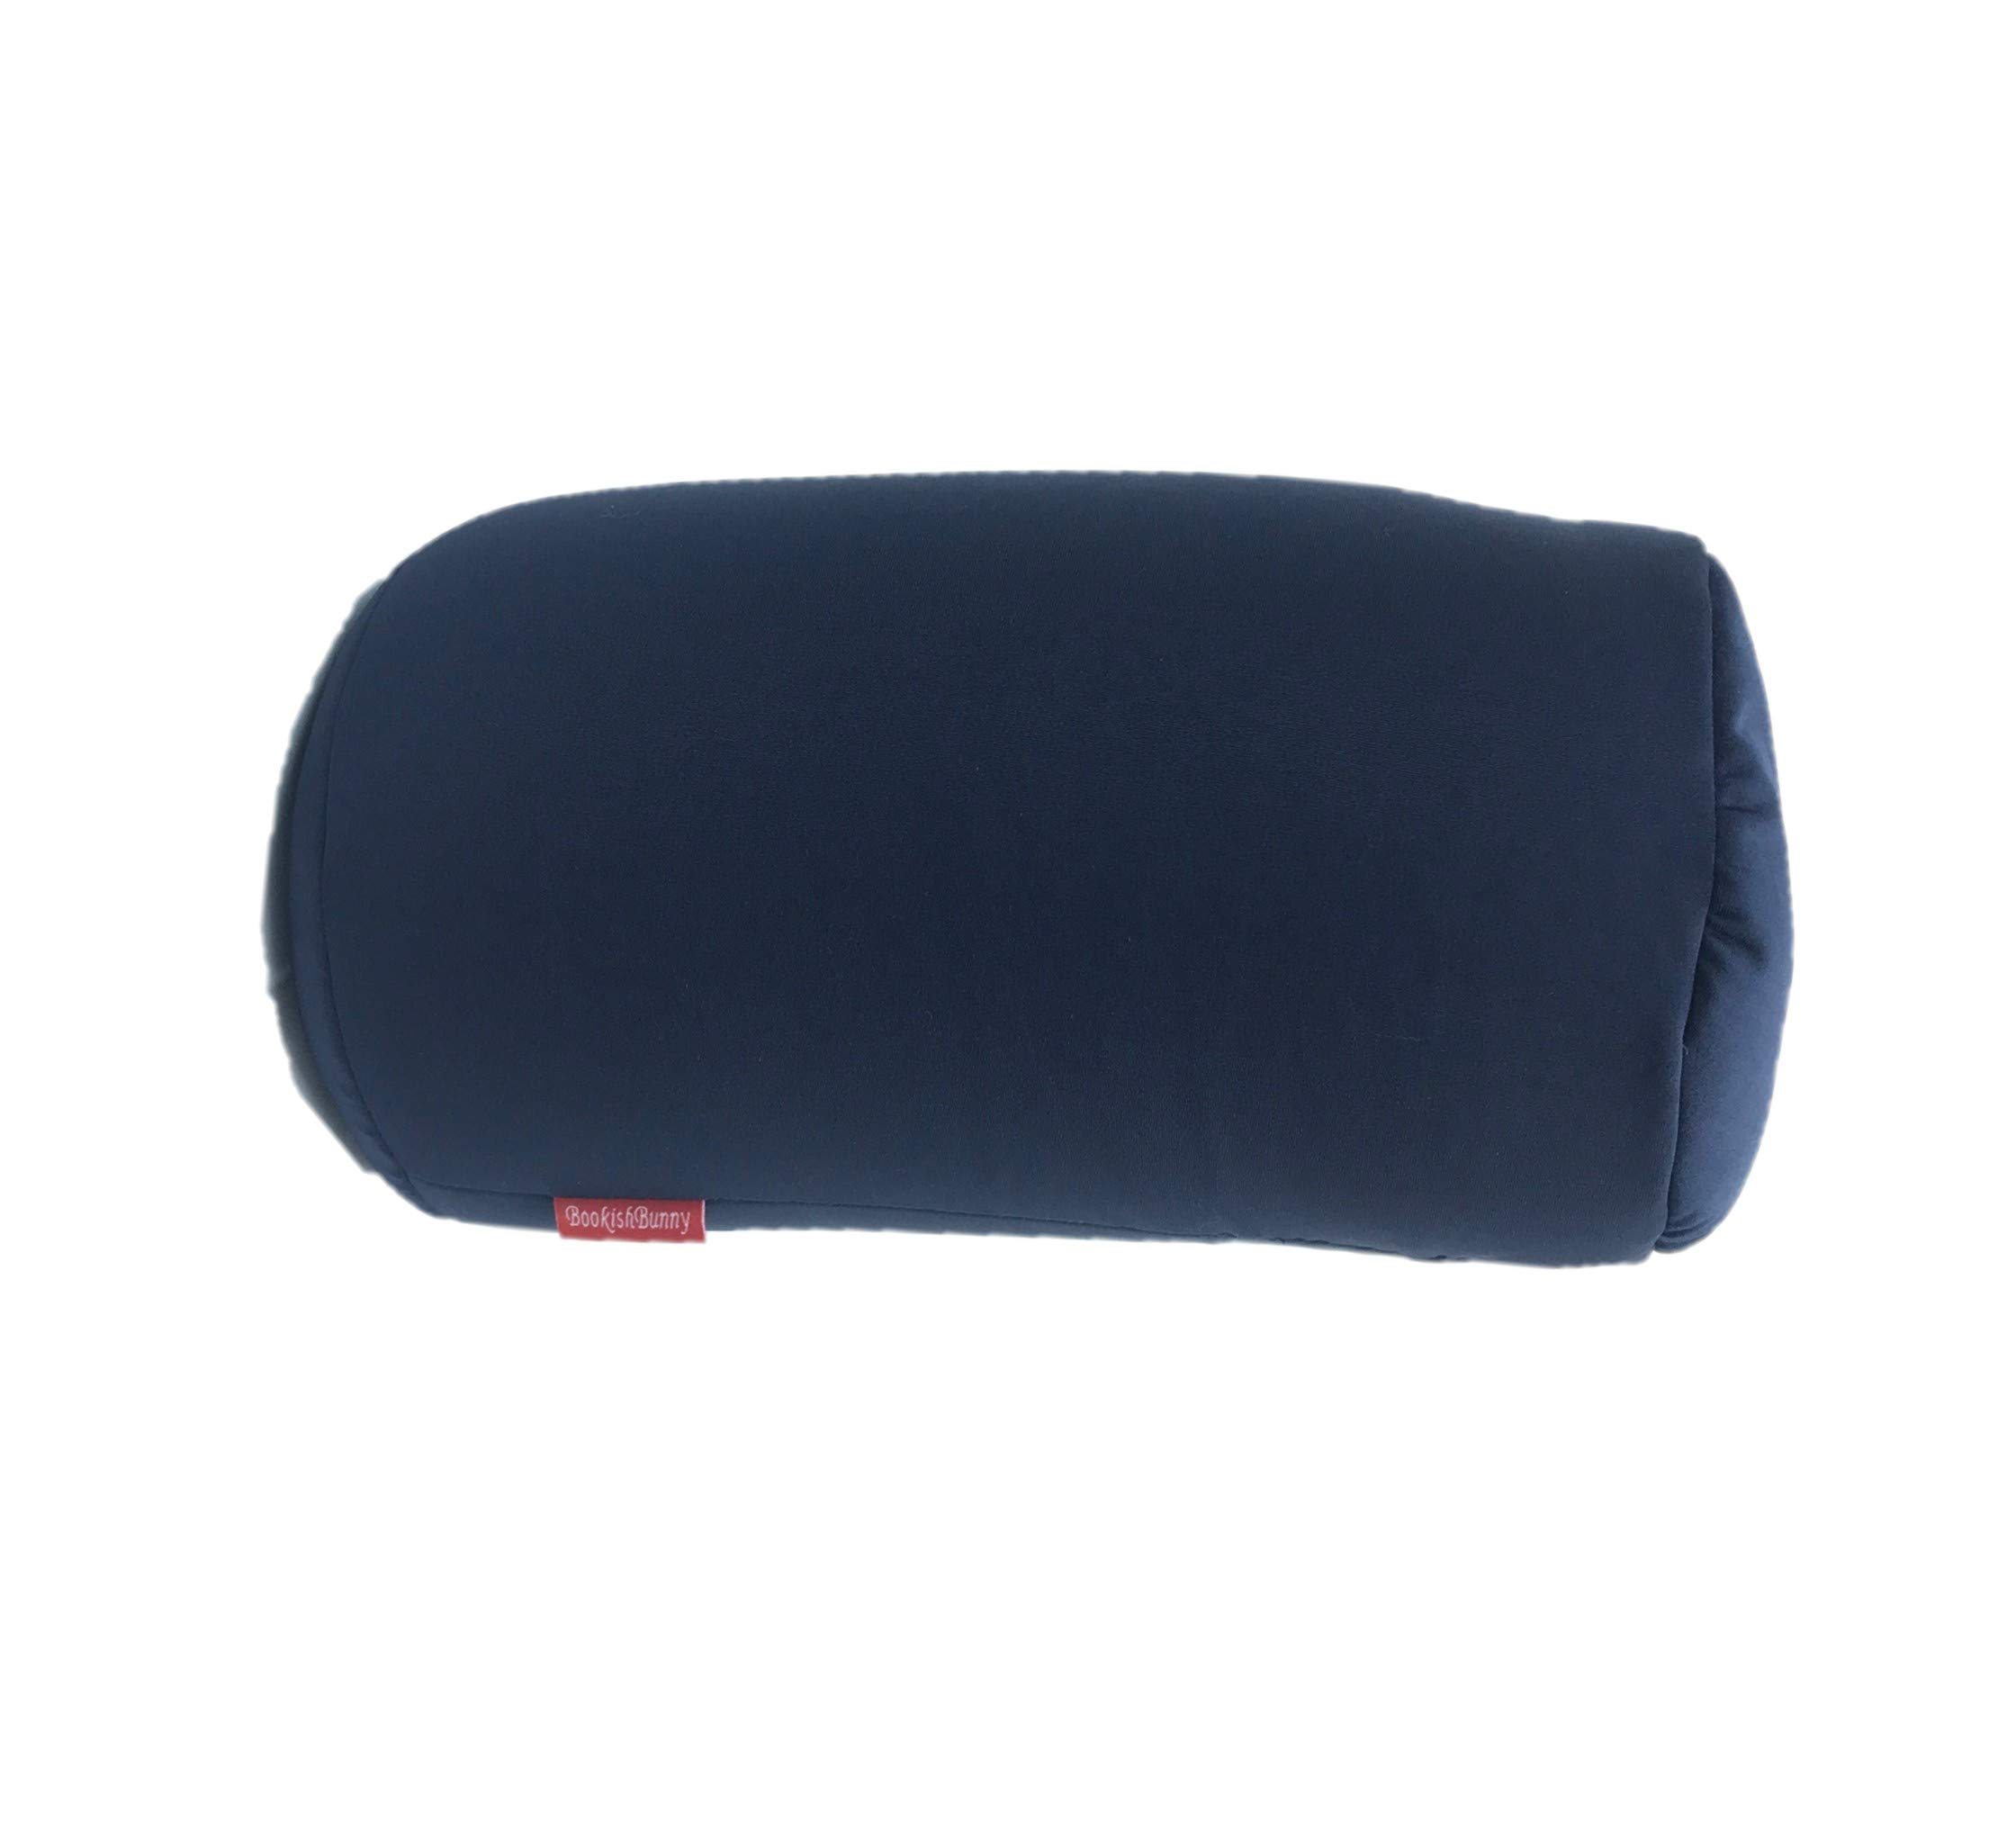 """Bookishbunny Home Office Chair Car Seat Cushion Micro Bead Roll Pillow 7"""" x 12"""" Head Neck Back Body Comfort (Navy)"""